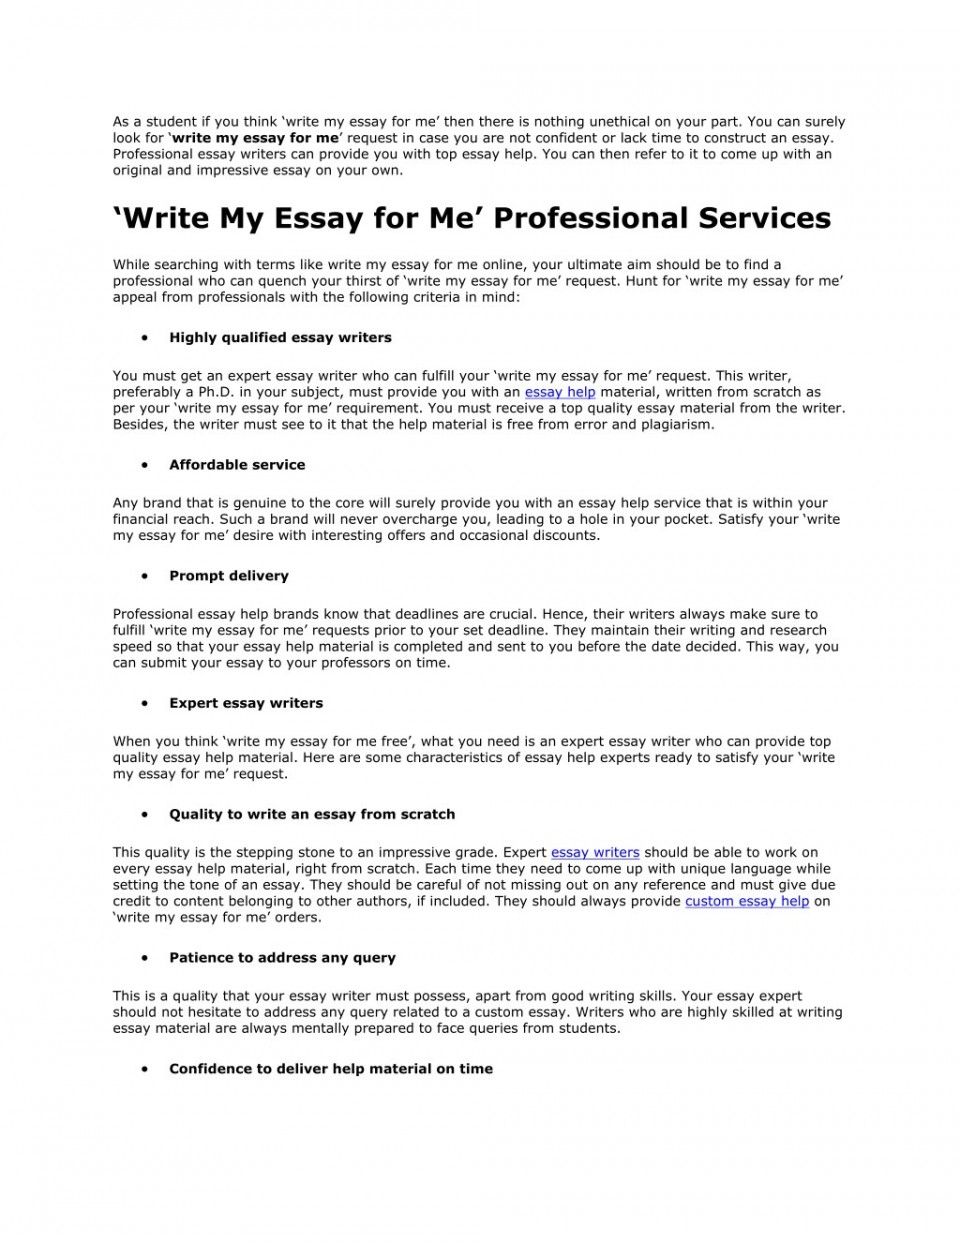 017 Write My Essay For Me Example As Student If You Think Surprising Please Canada Generator 960